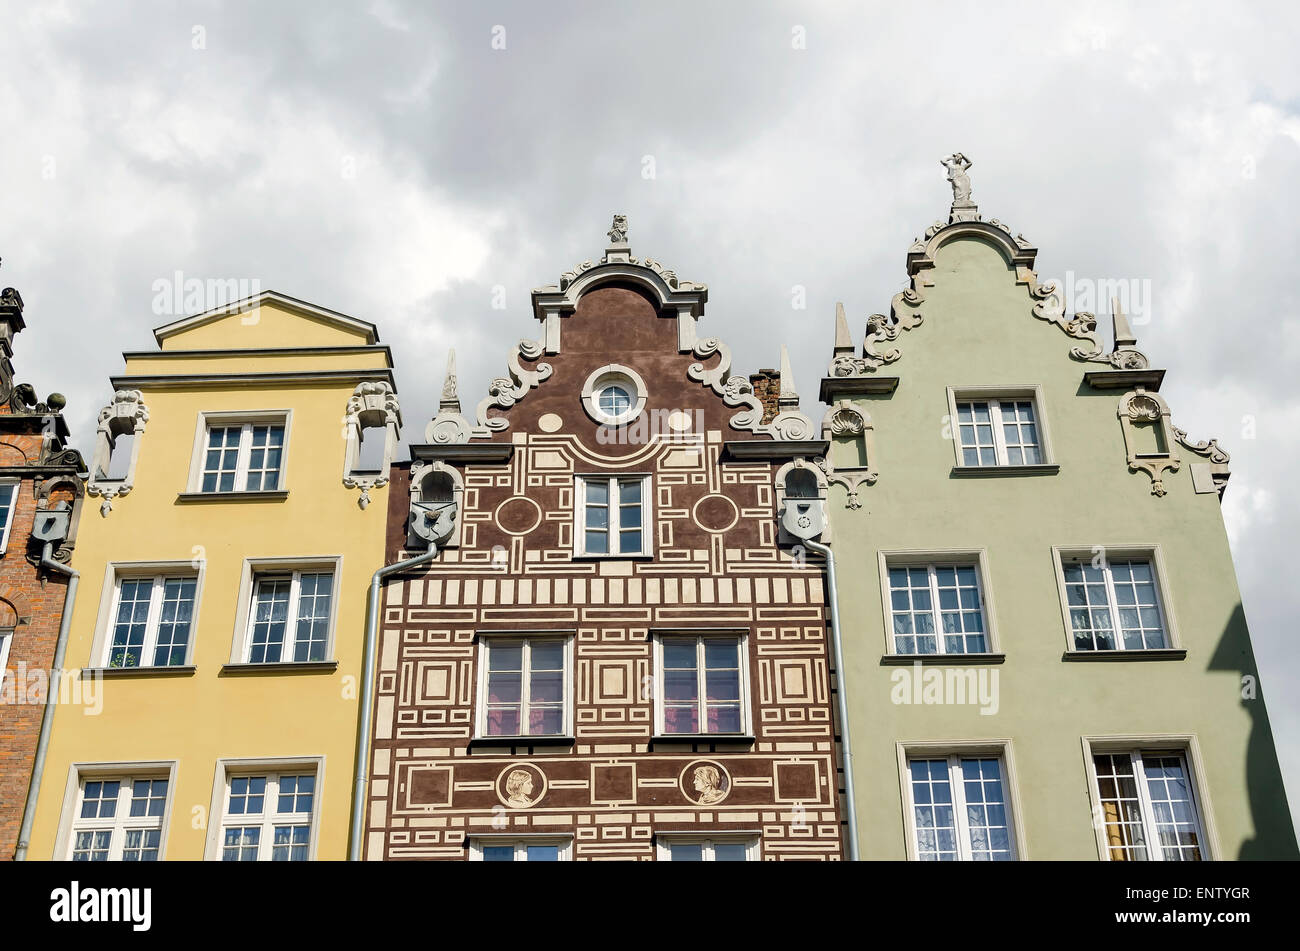 Old Town Architecture Gdansk Poland showing several styles of tenement houses with gabled roofs - Stock Image